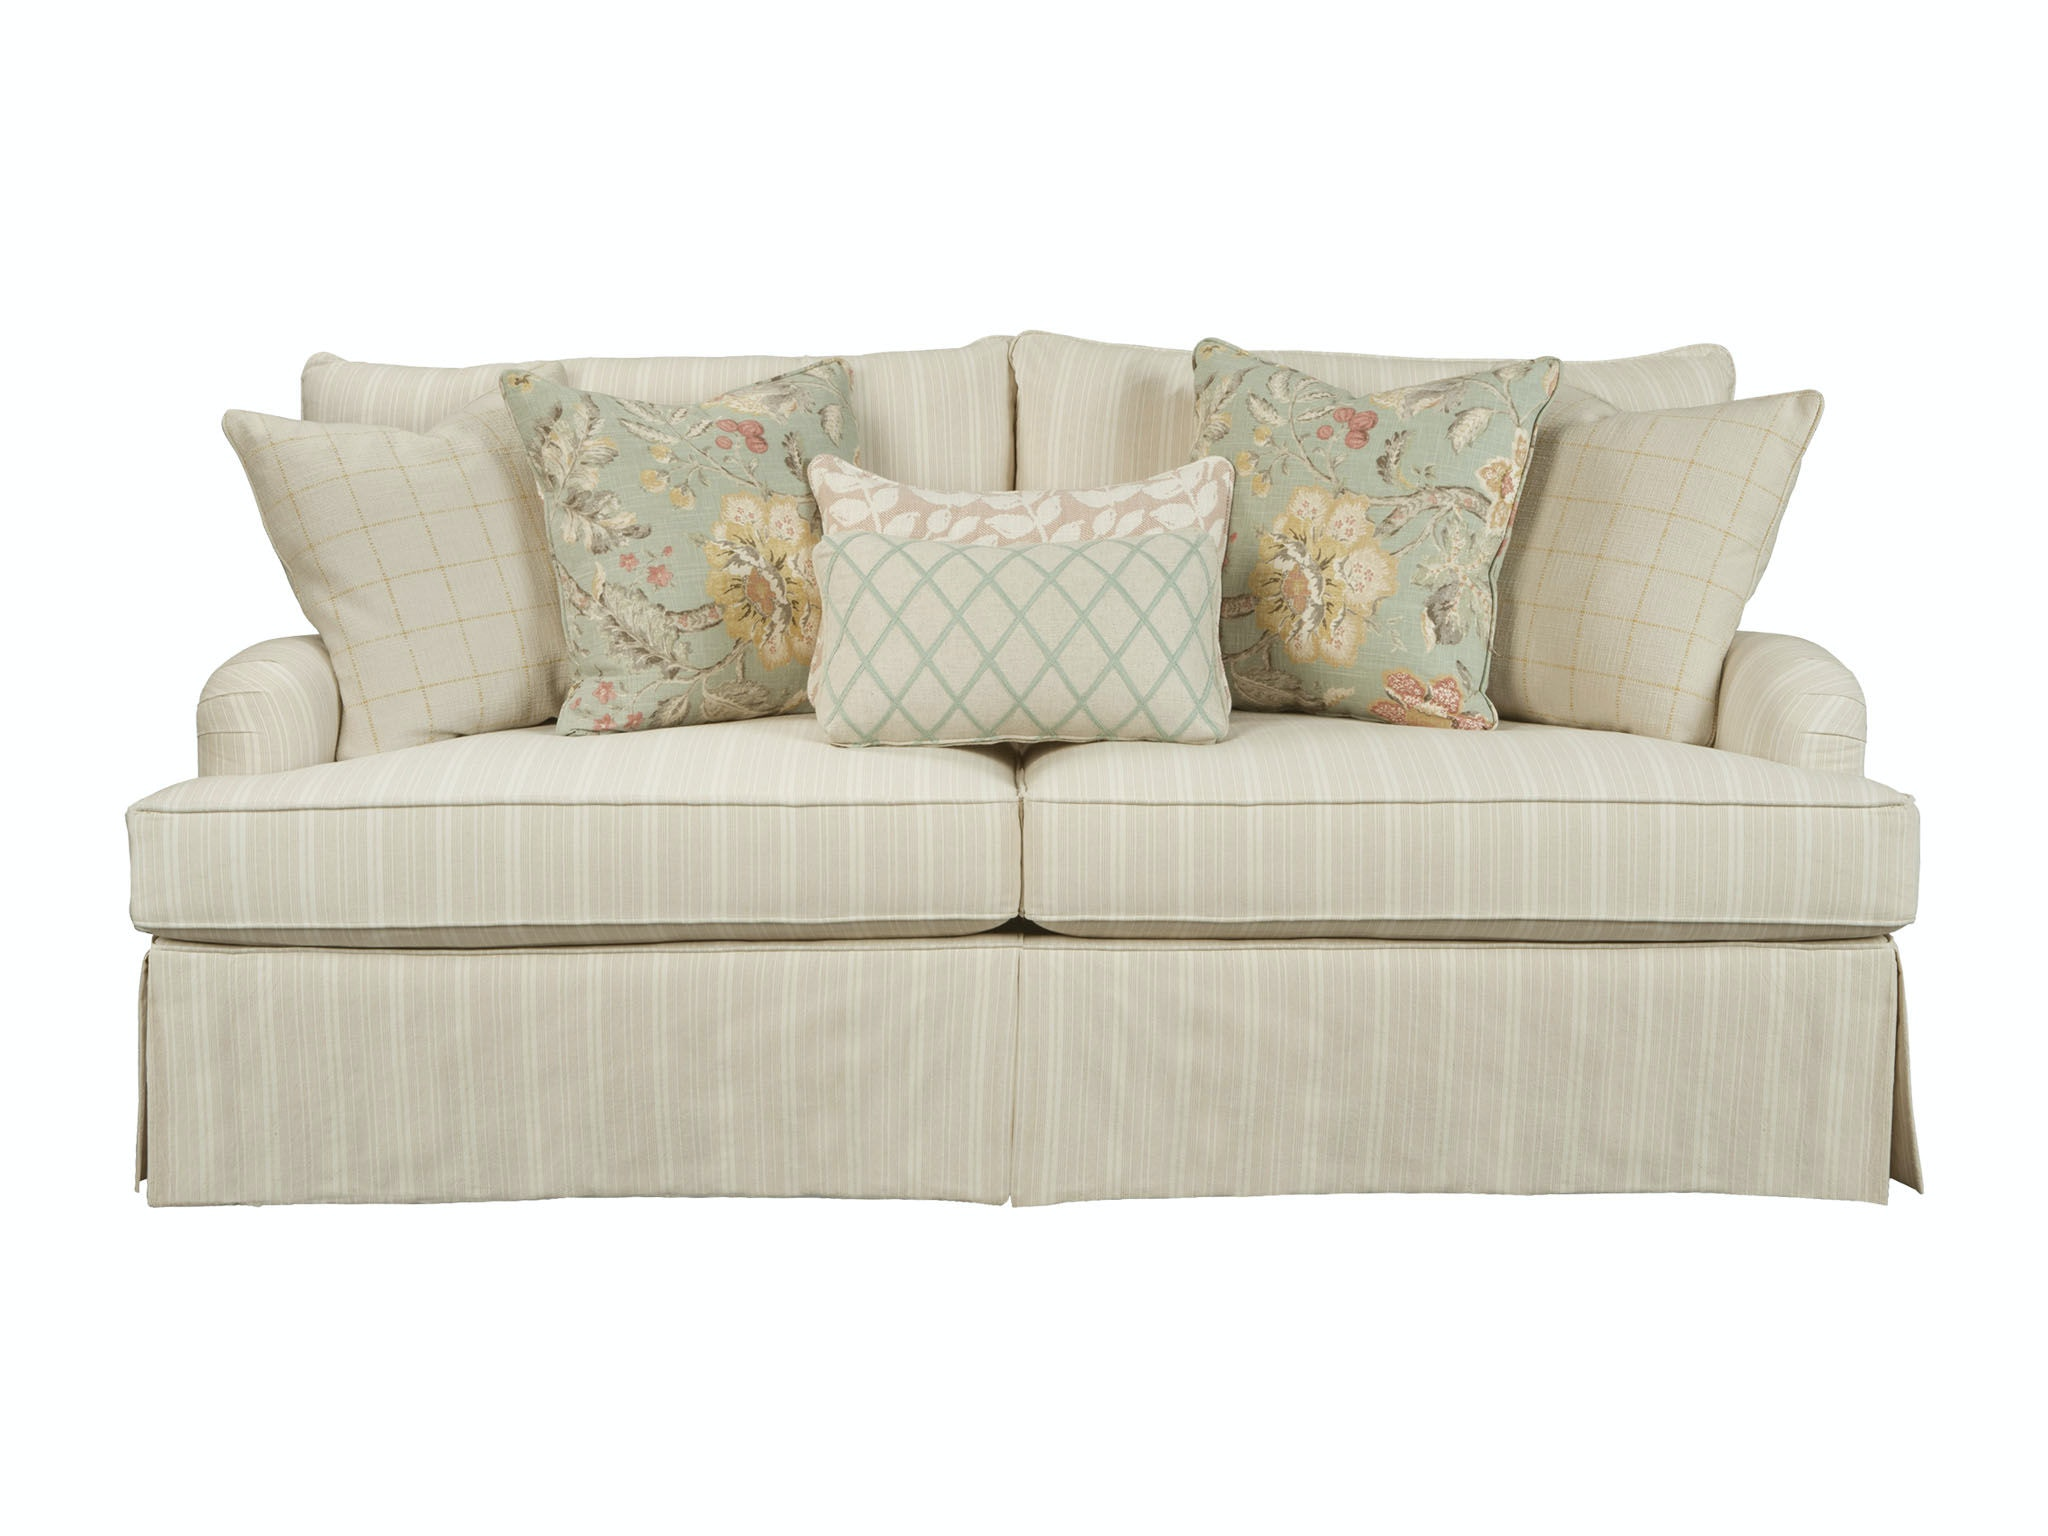 Exceptionnel Paula Deen By Craftmaster Sofa P973650BD